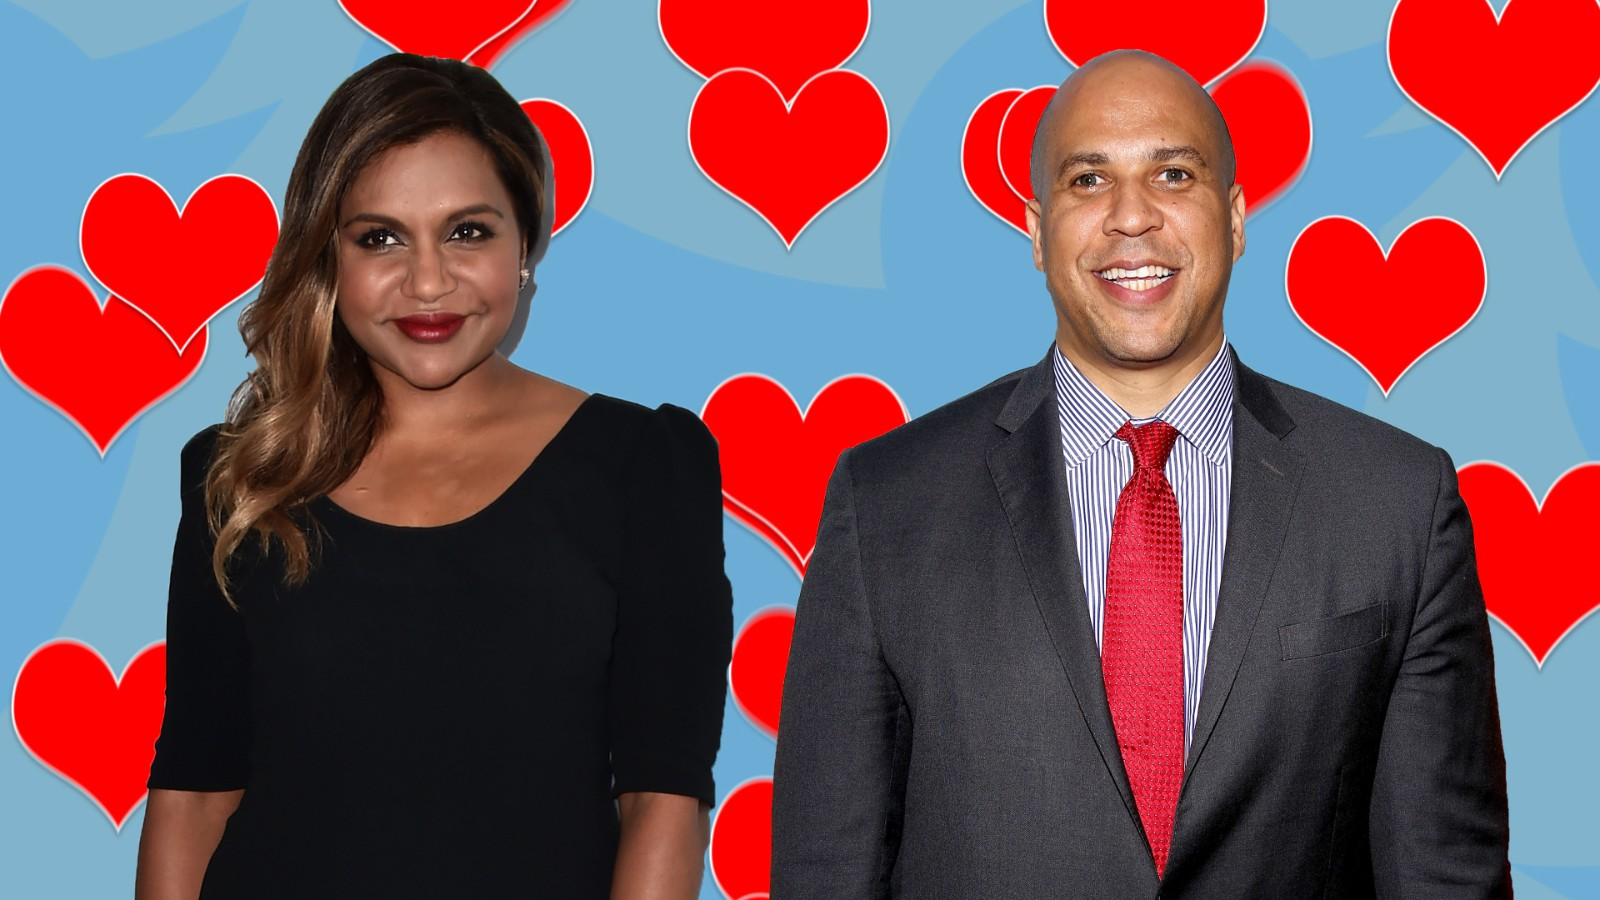 Fan photoshopped picture of Mindy Kaling and Cory Booker